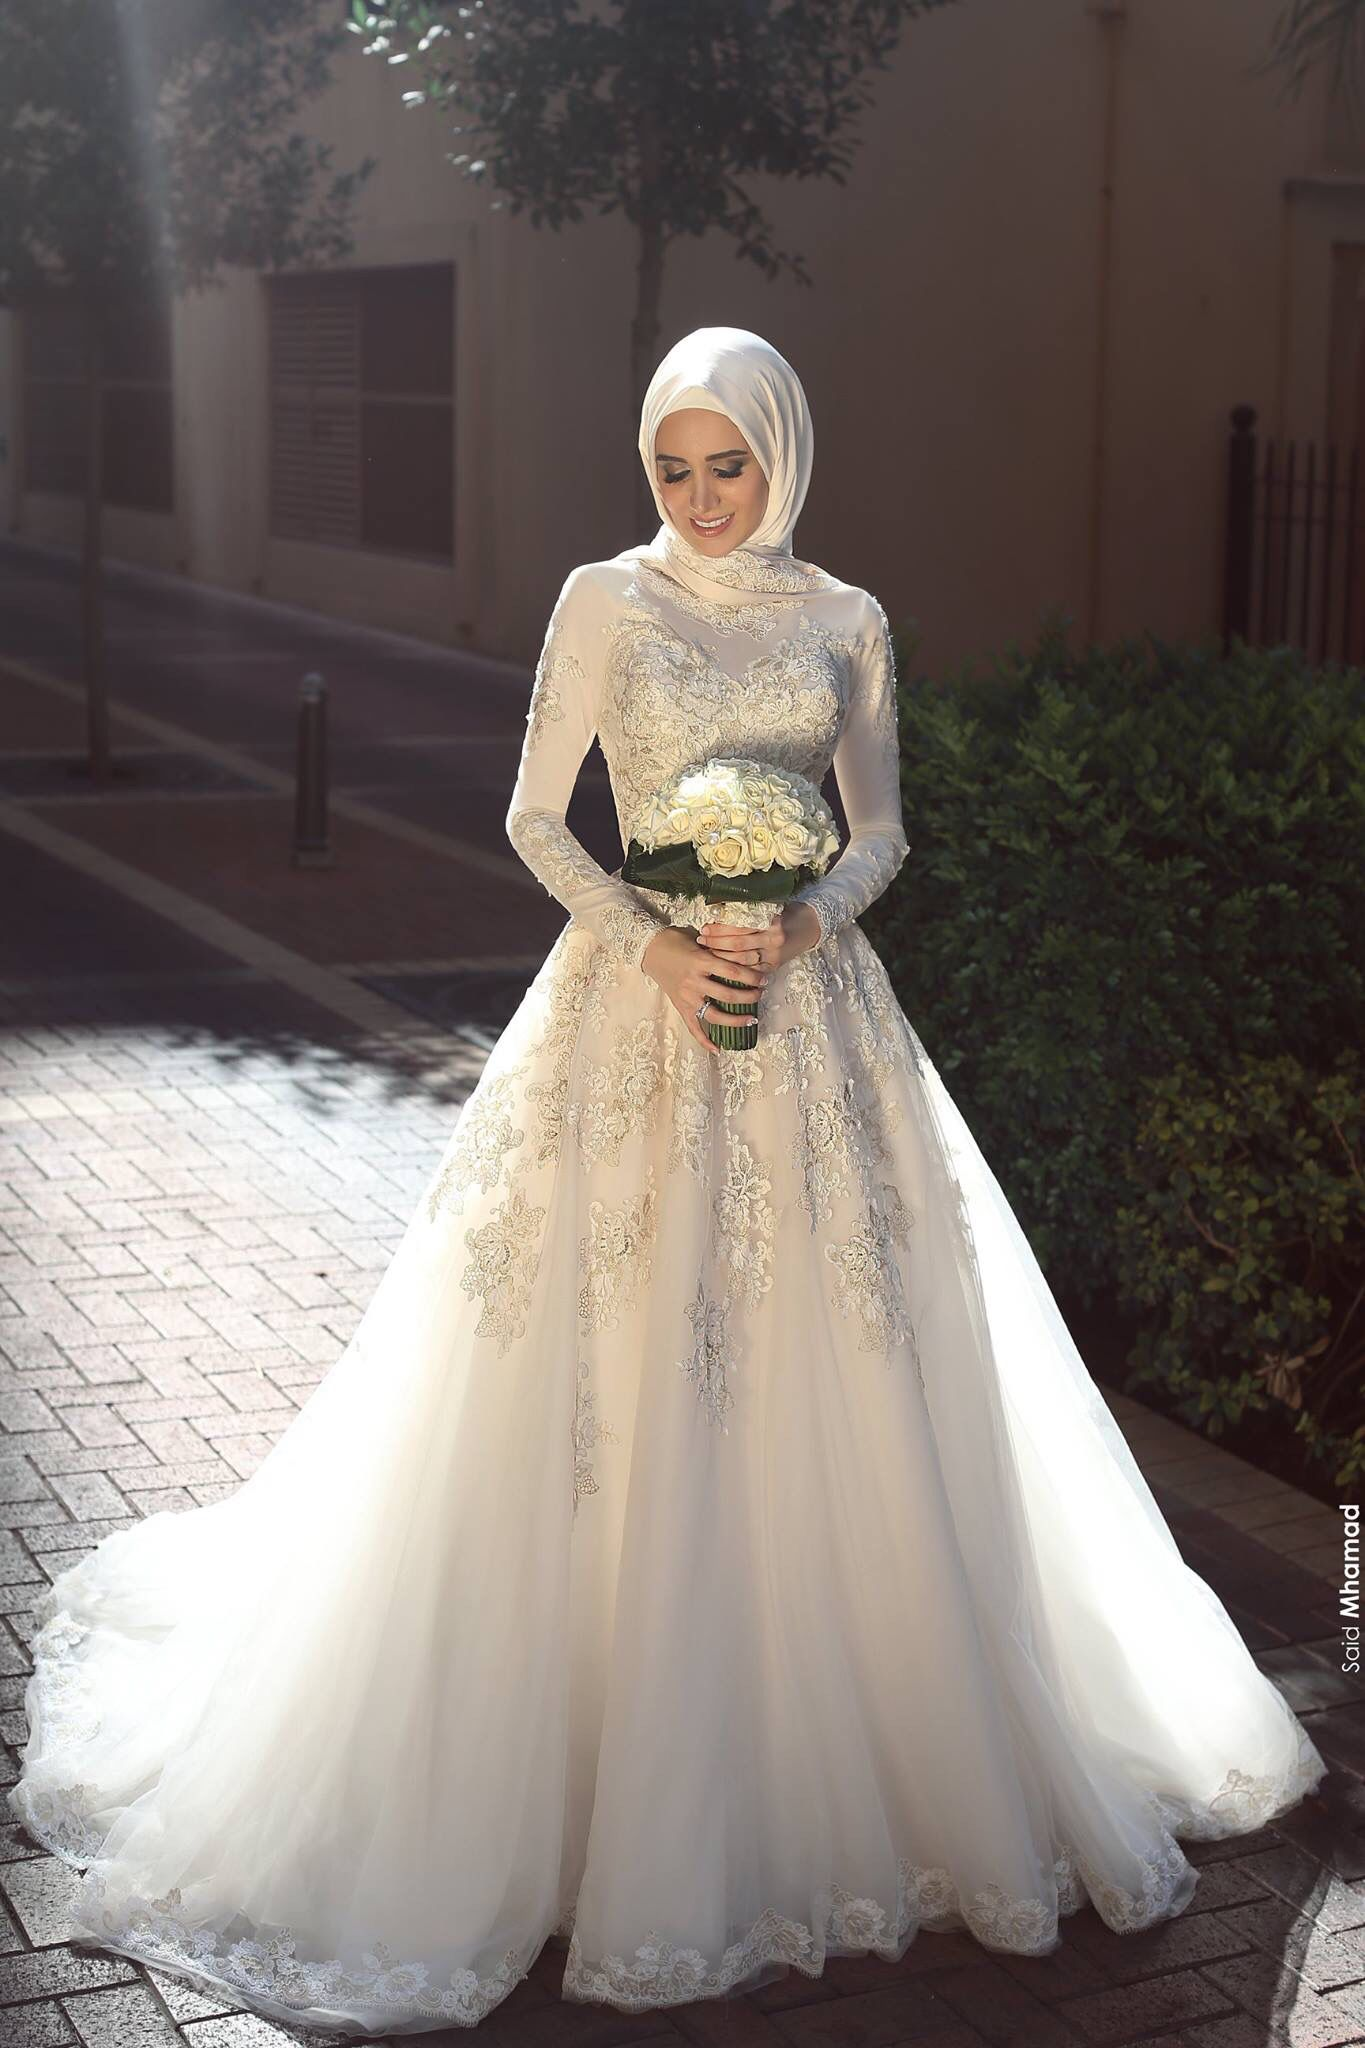 Muslimah moslem wedding ideas pinterest wedding for Dresses for muslim wedding